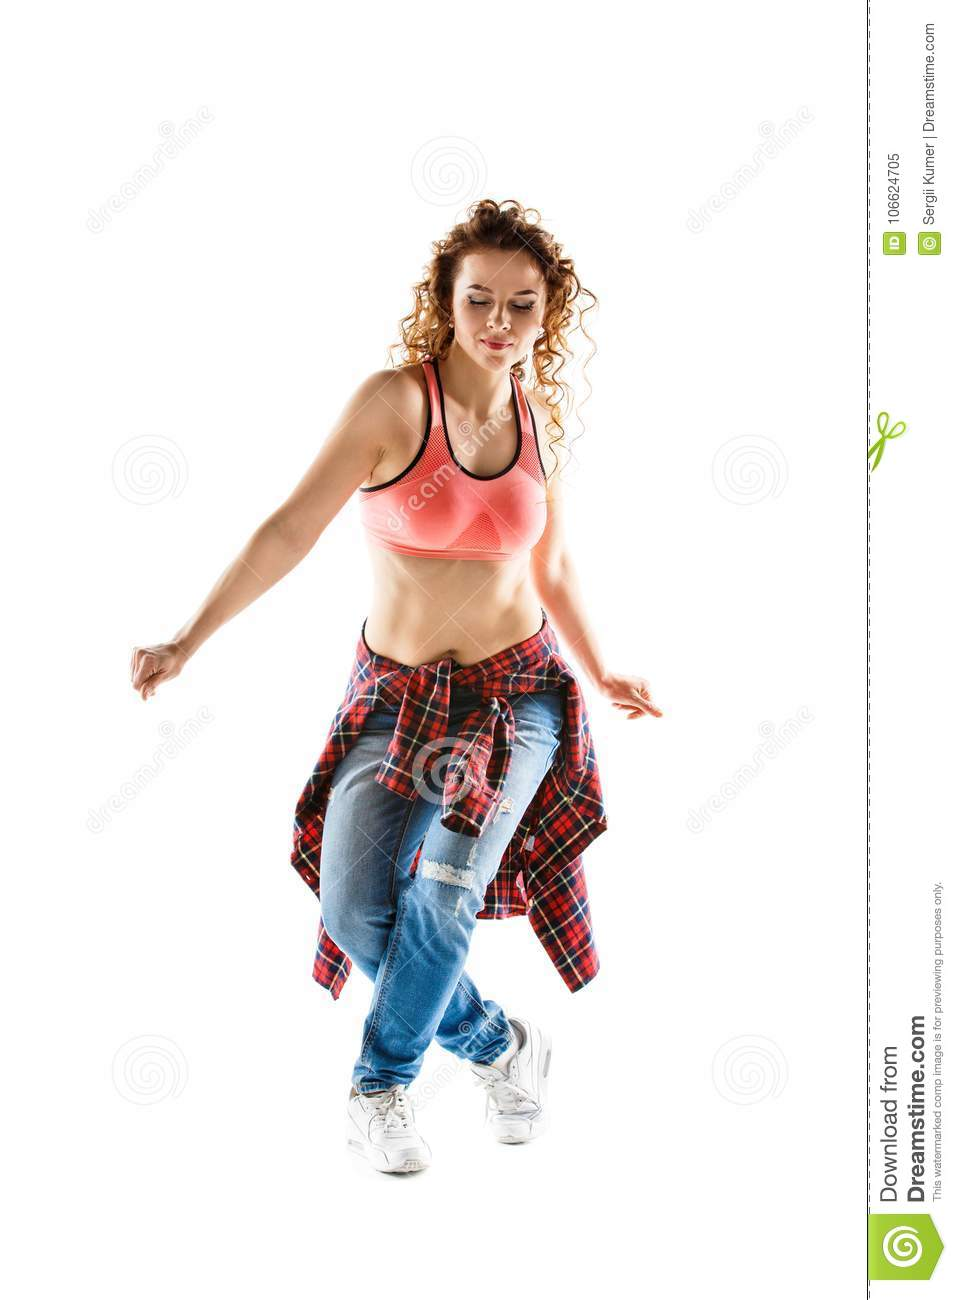 Young happy woman dancing against white background